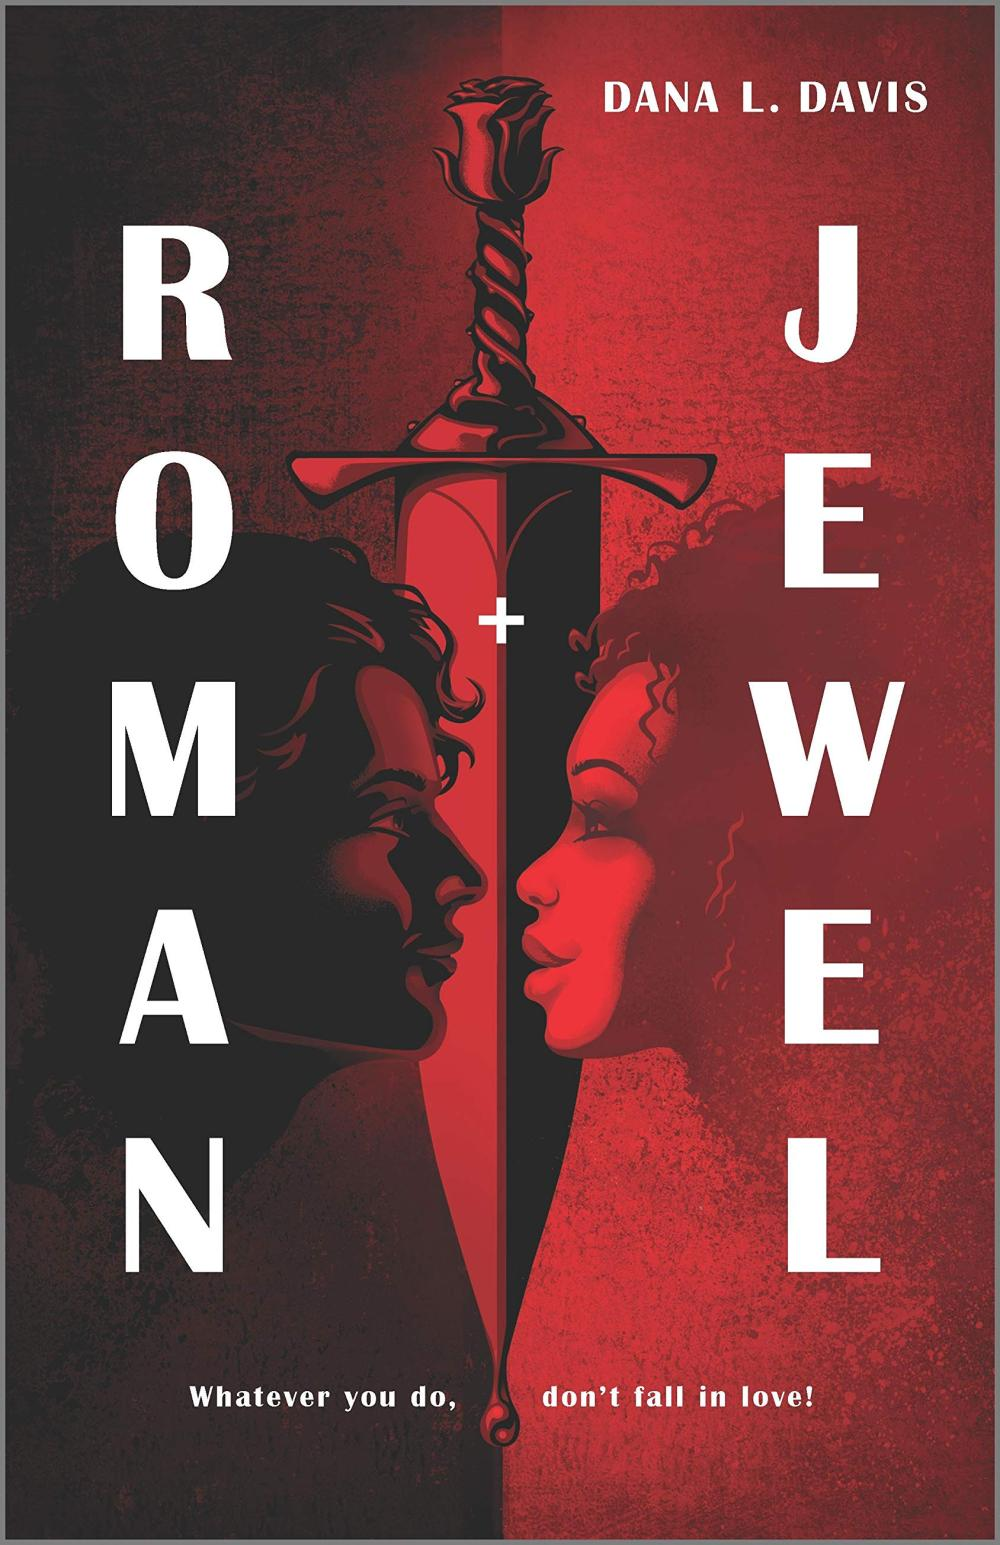 'Roman and Jewel' by Dana L. Davis